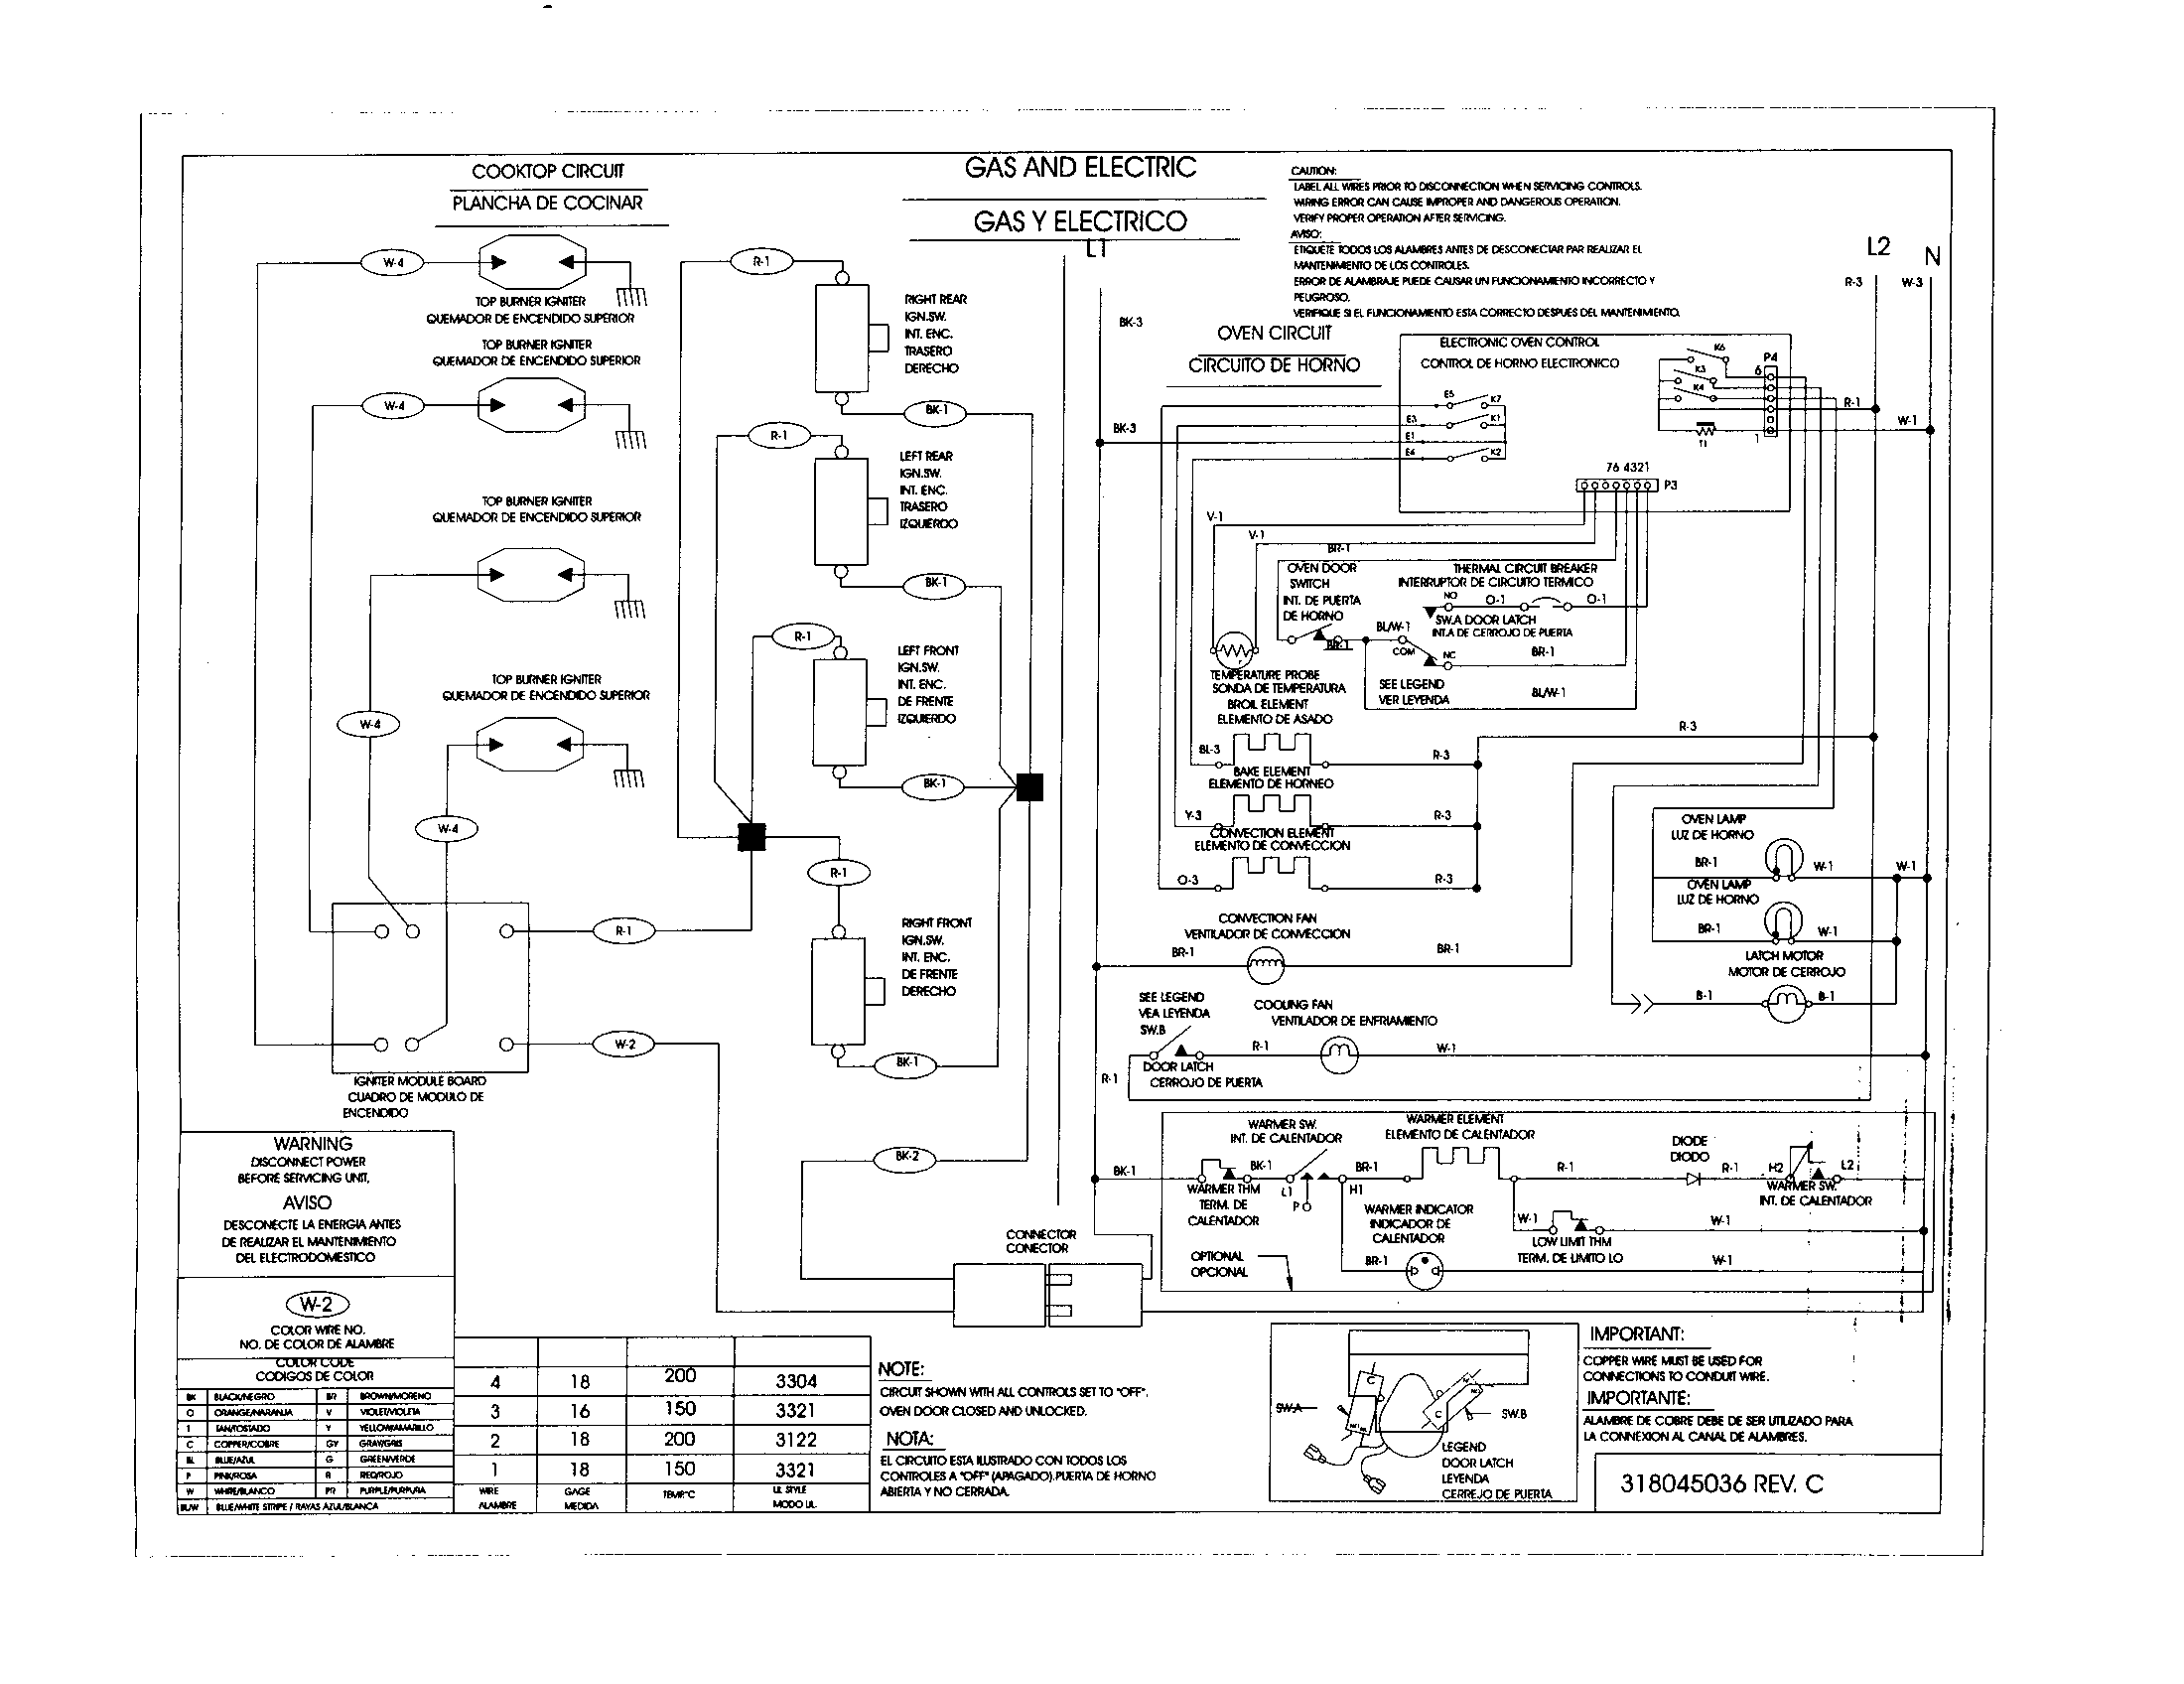 Llv Wiring Diagram 88 Easy Rules Of Fuel Pump Relay Wire Online Schematics Rh Delvato Co 1996 Chevy S10